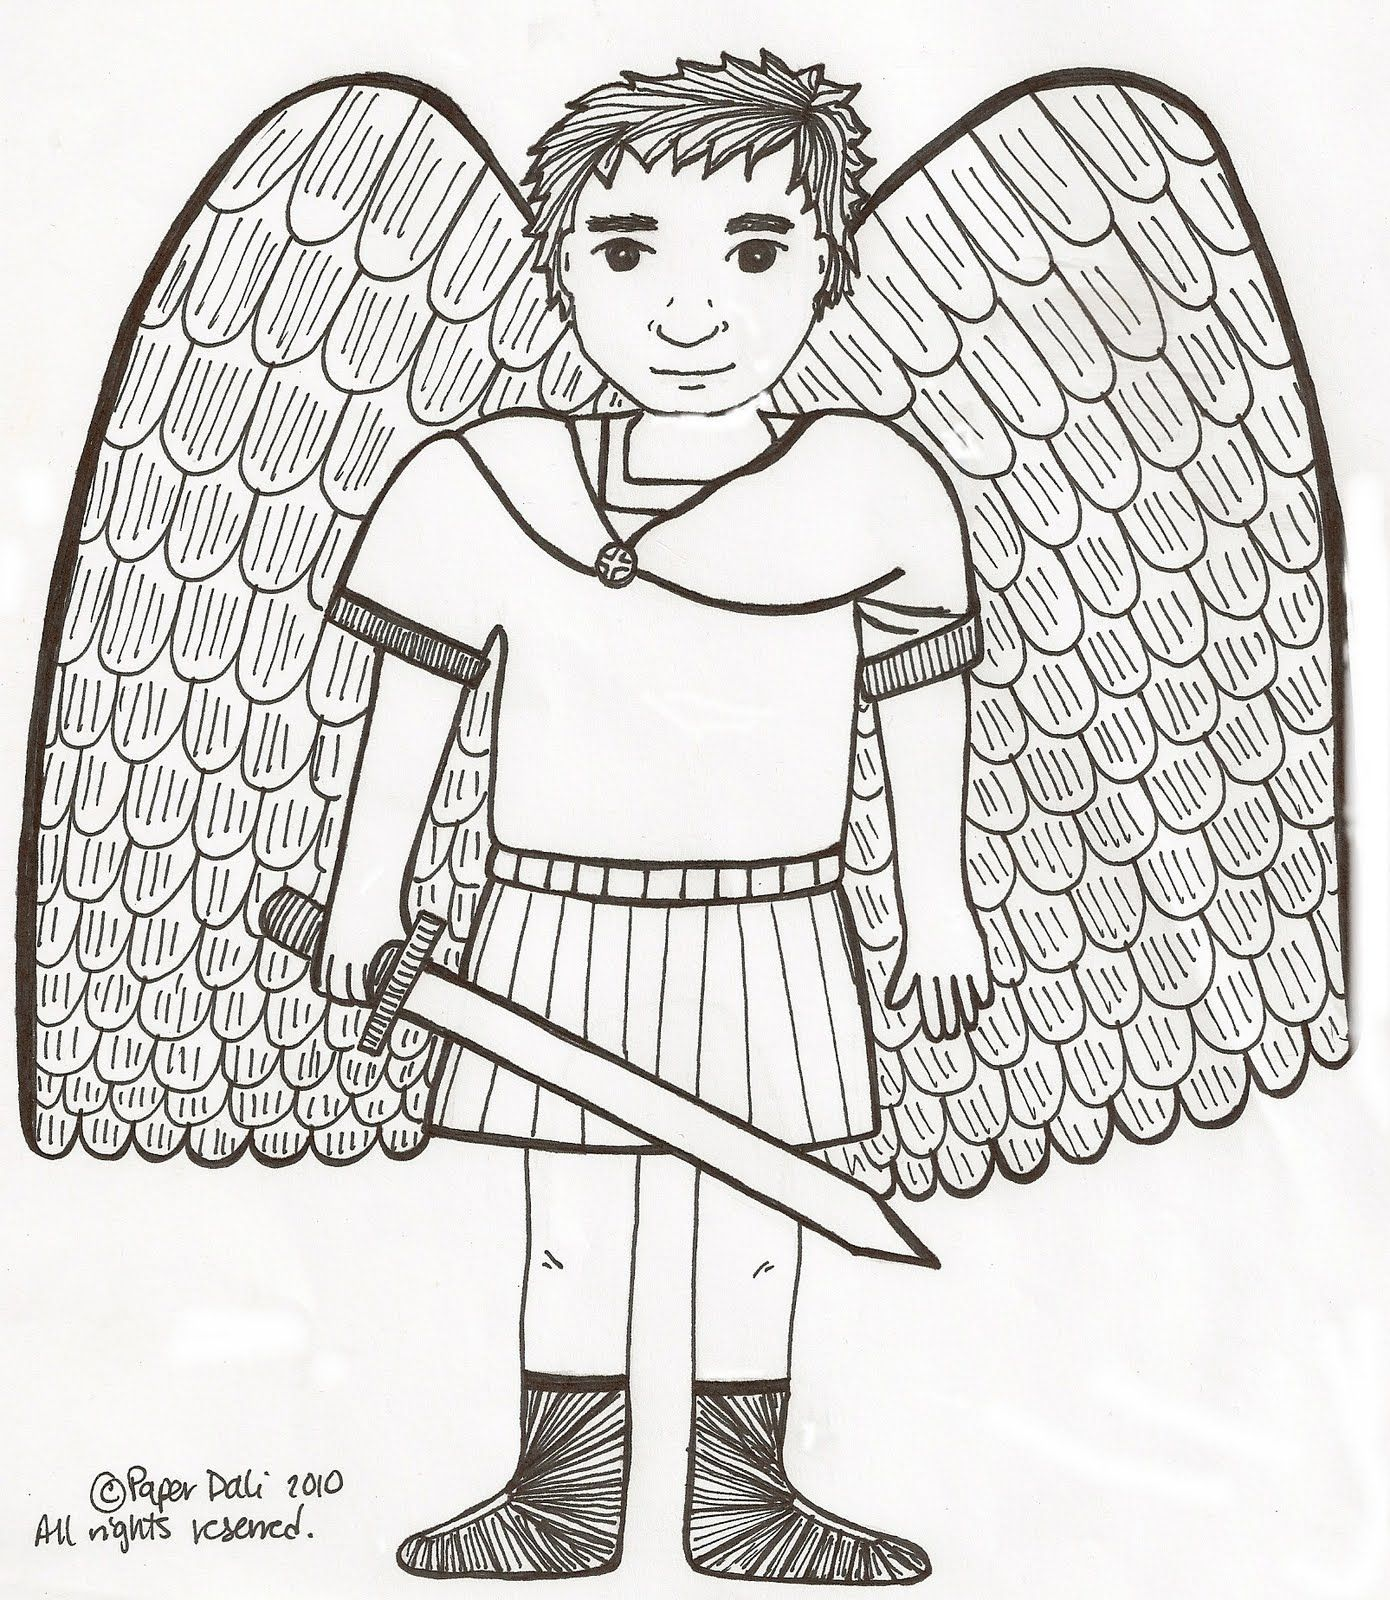 St. Michael the Archangel Google Image Result for http://3